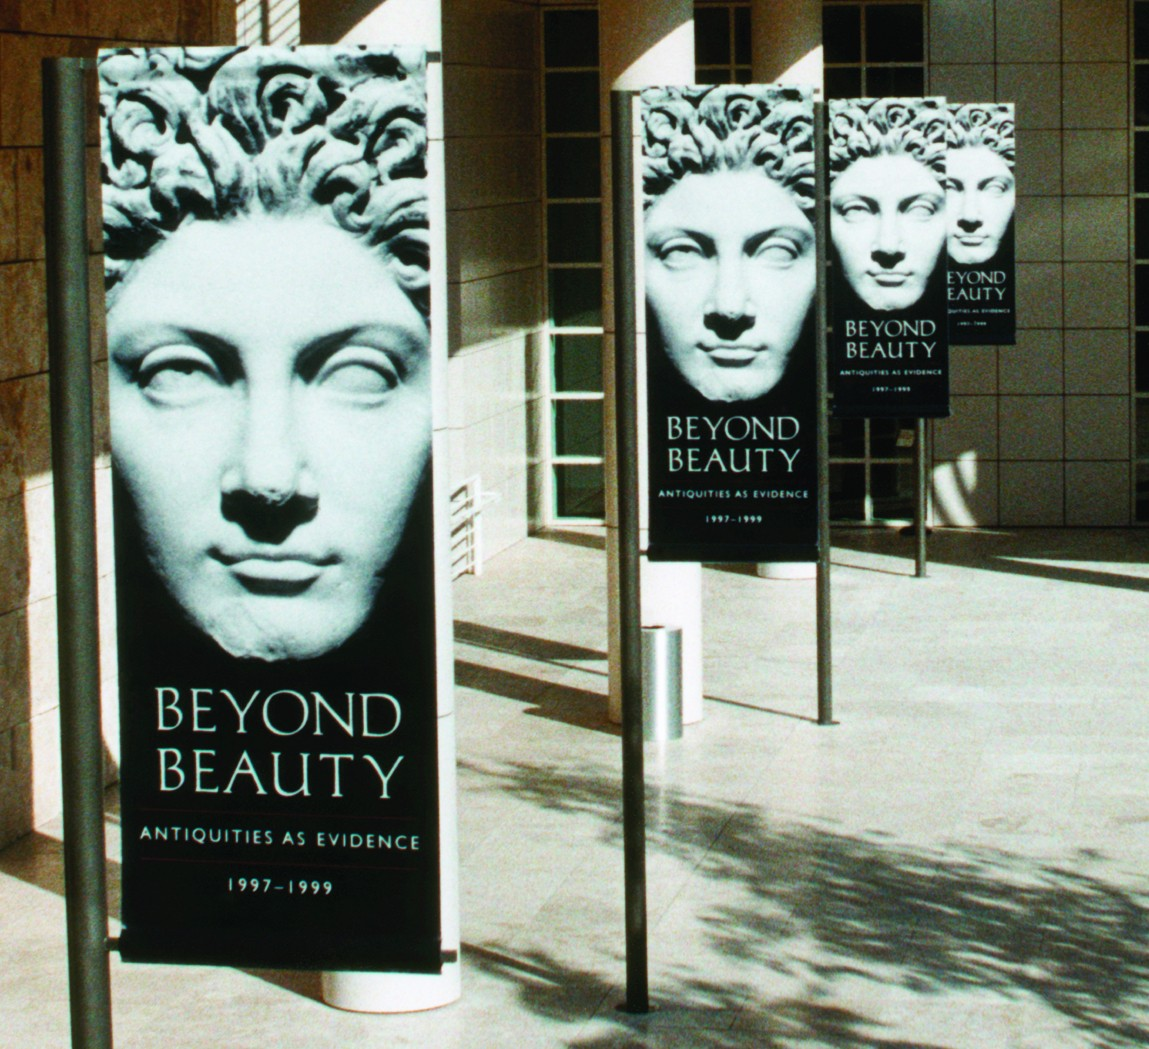 Vertical banners at The Getty, advertising their beyond beauty exhibit - Buy your own affordable vertical banners